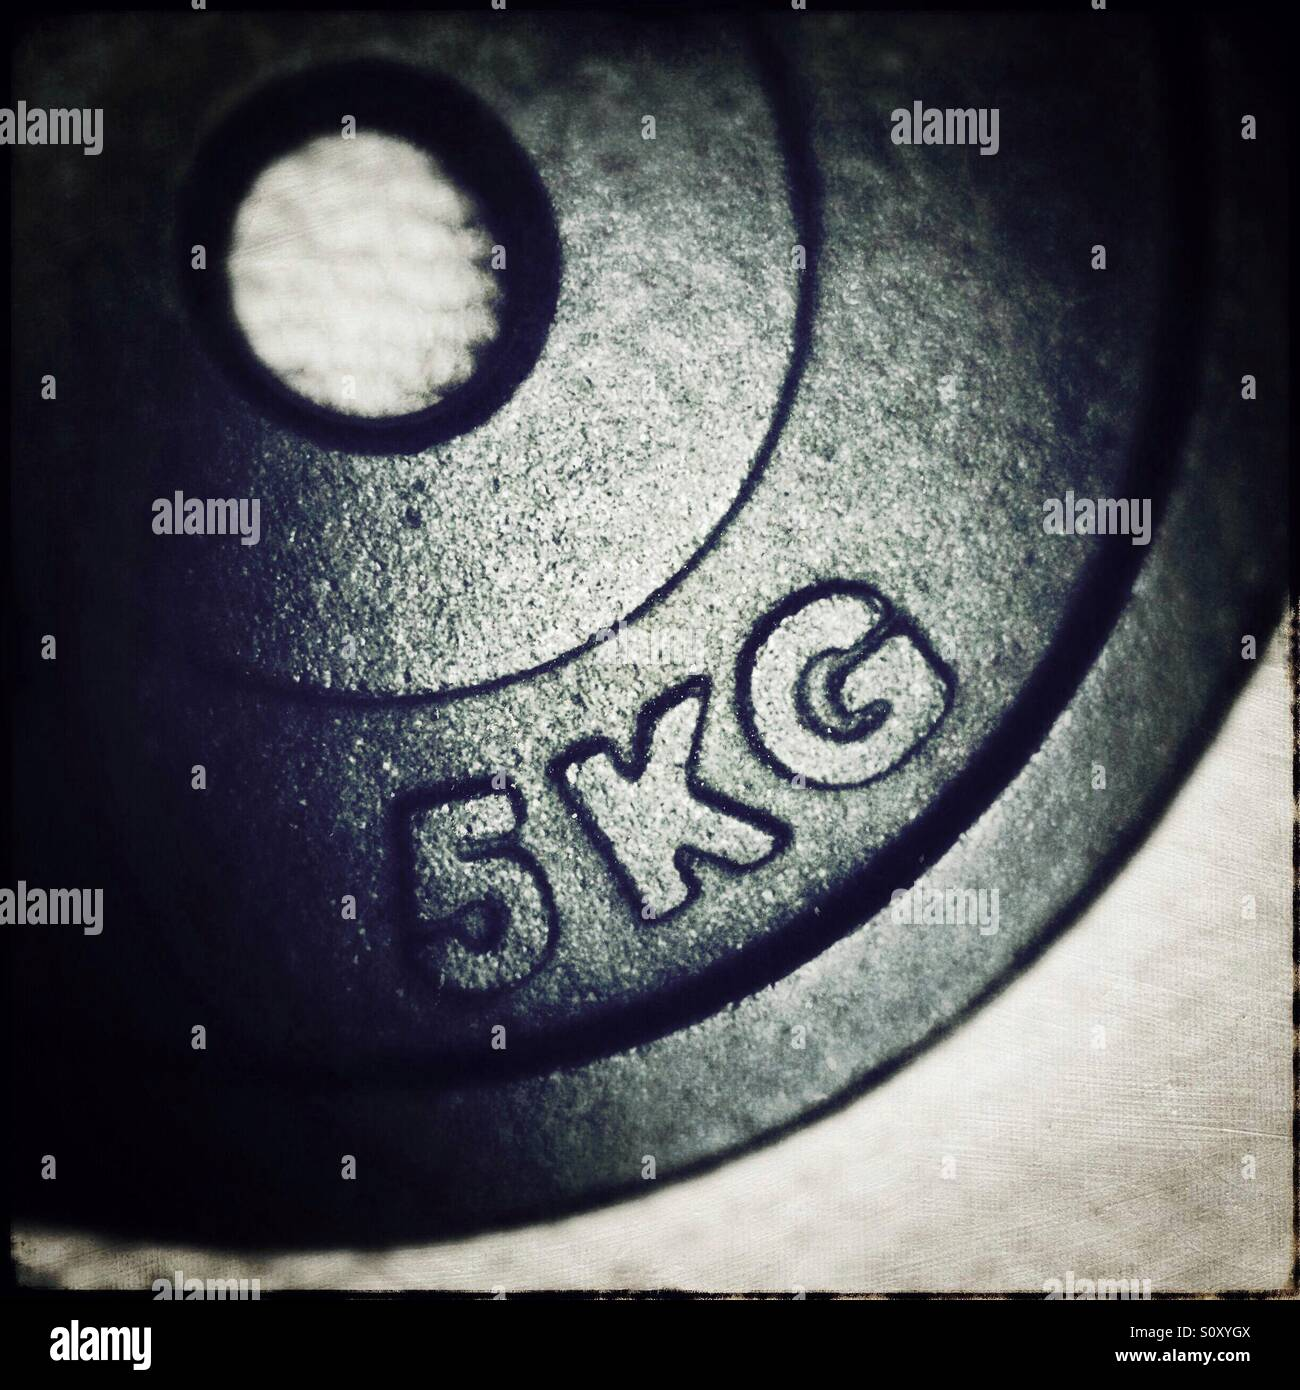 5KG weight - Stock Image